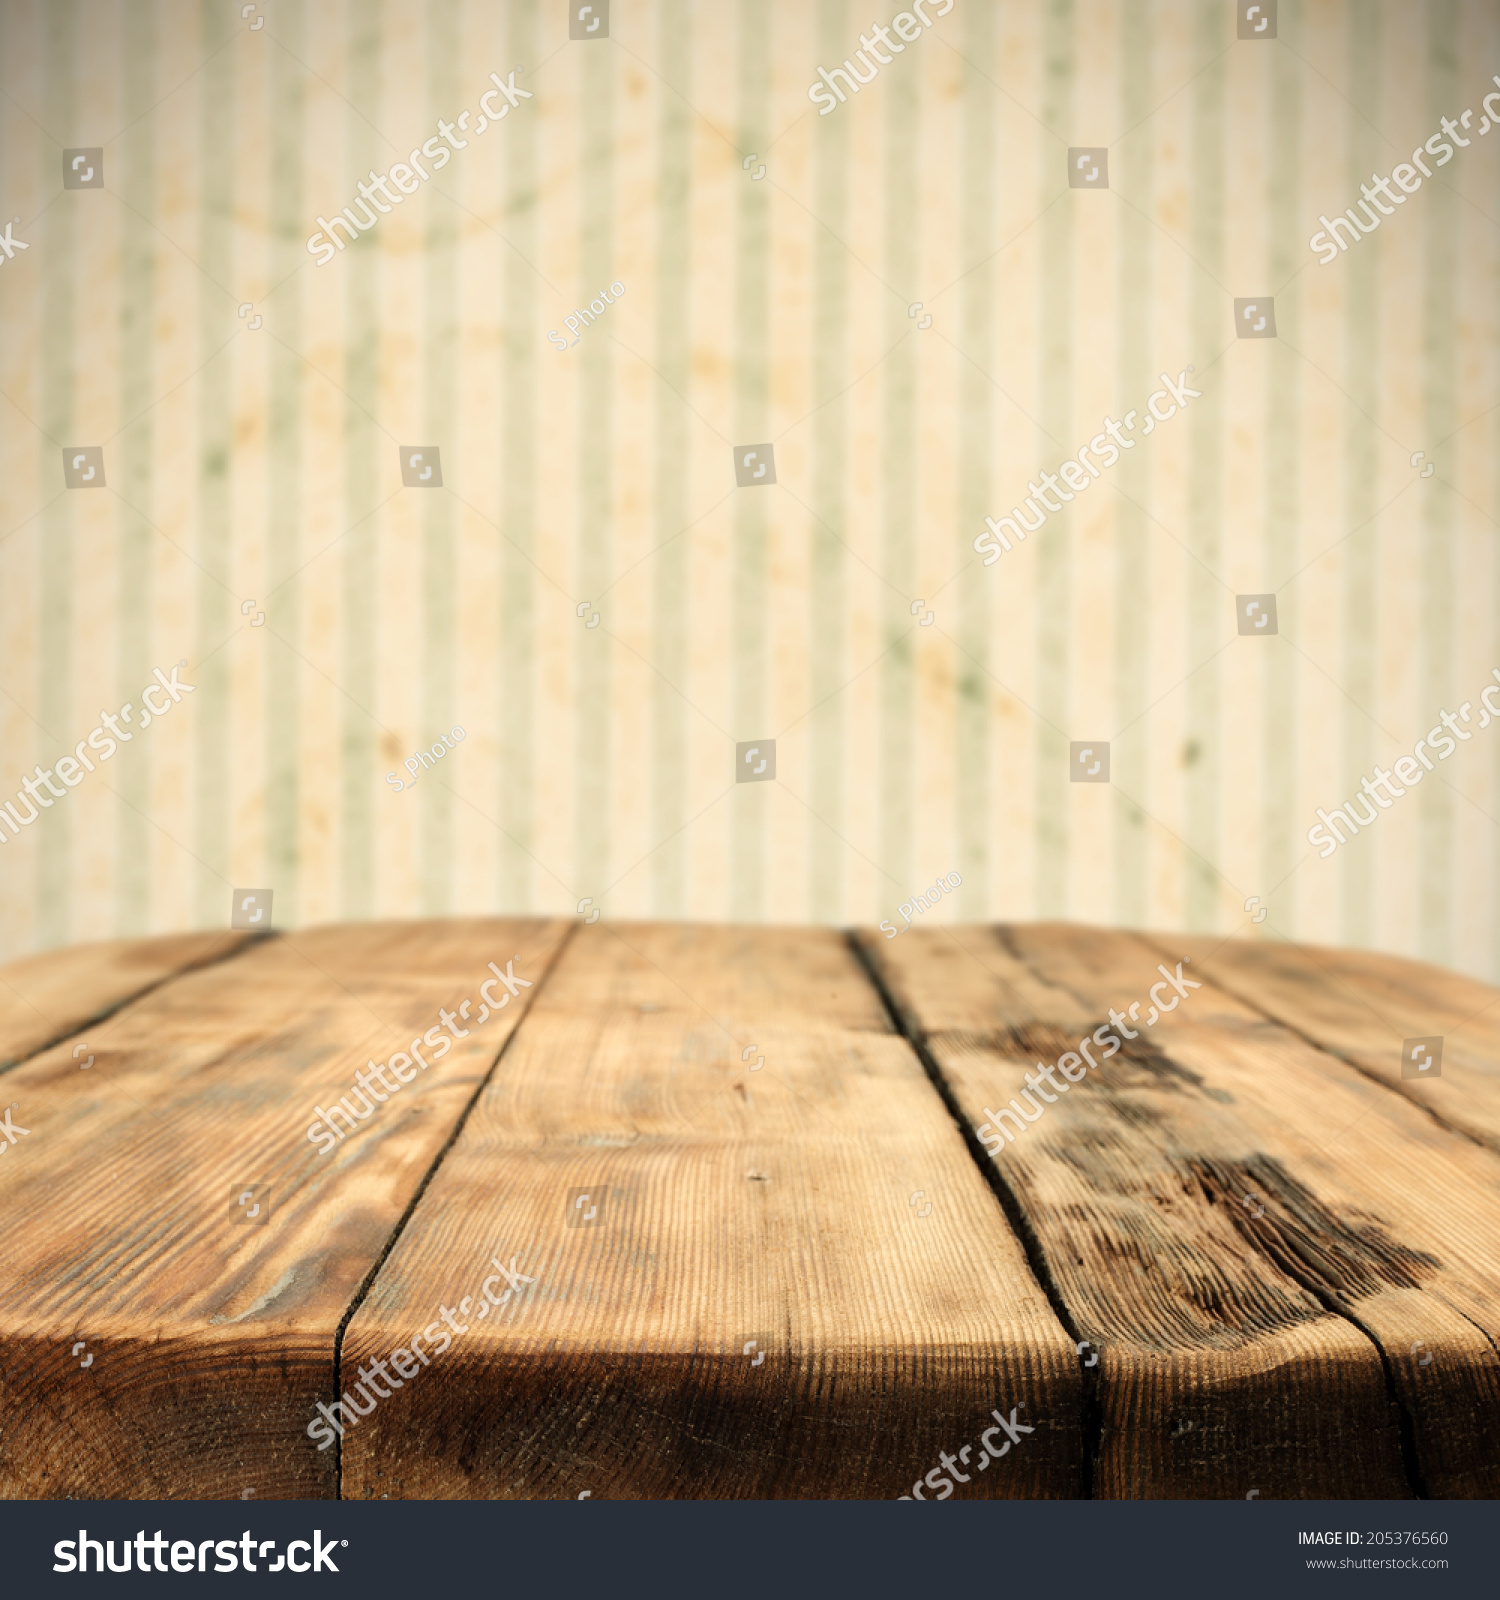 Old Table Wood Wallpaper Space Free Stock Photo 205376560